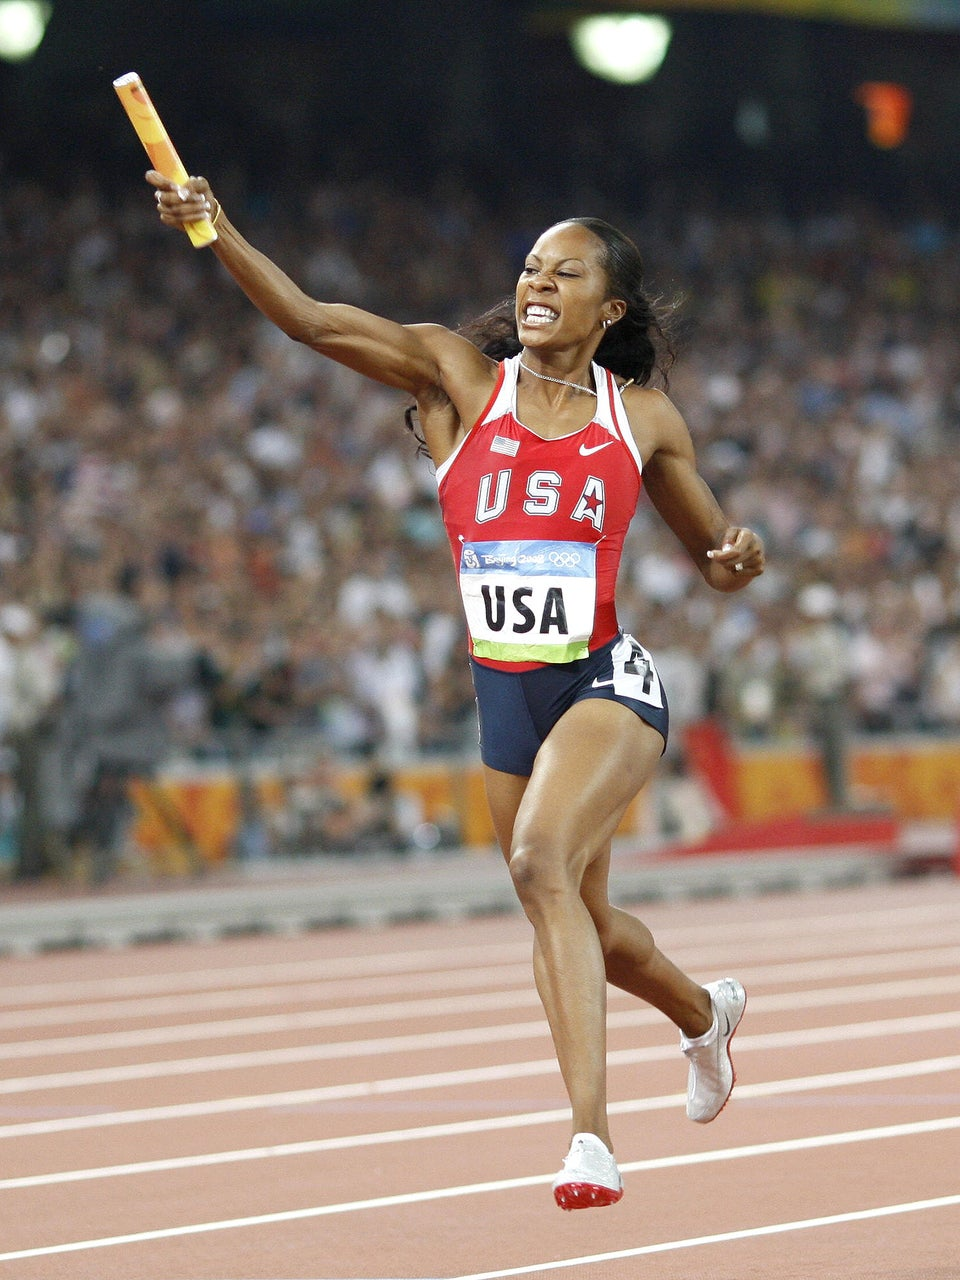 Olympian Sanya Richards-Ross Reveals She Had an Abortion Weeks Before 2008 Summer Games